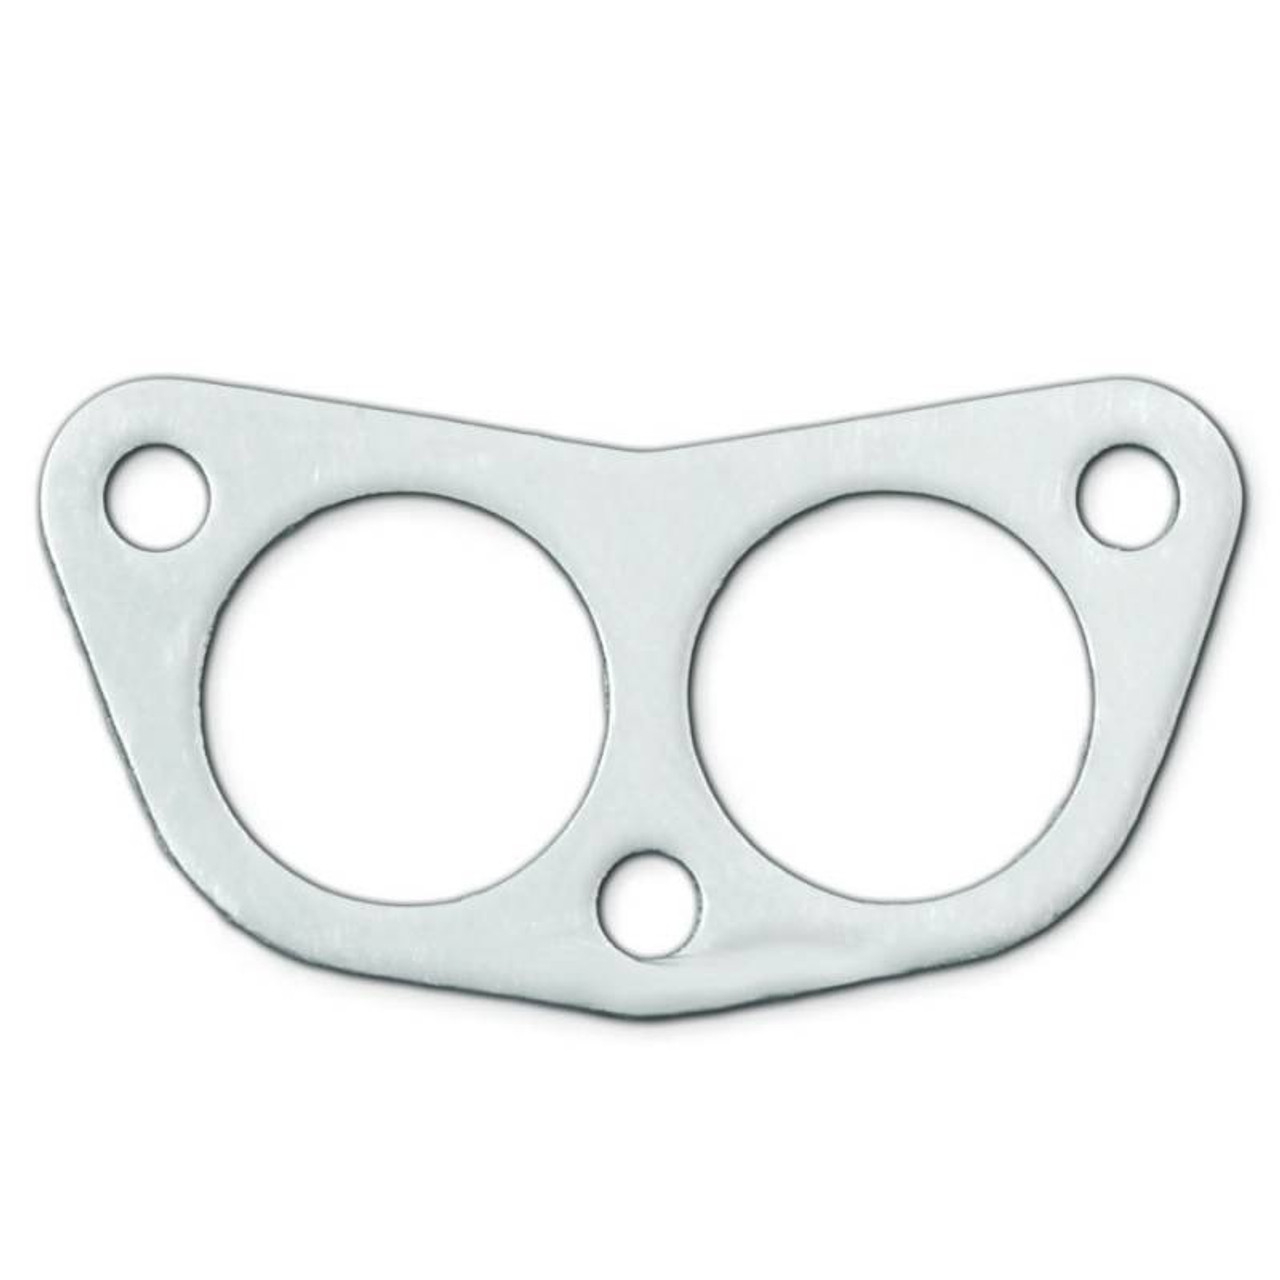 "Remflex Exhaust Collector Gaskets 4 Into One Square 1 5//8/"" Tube  8069"